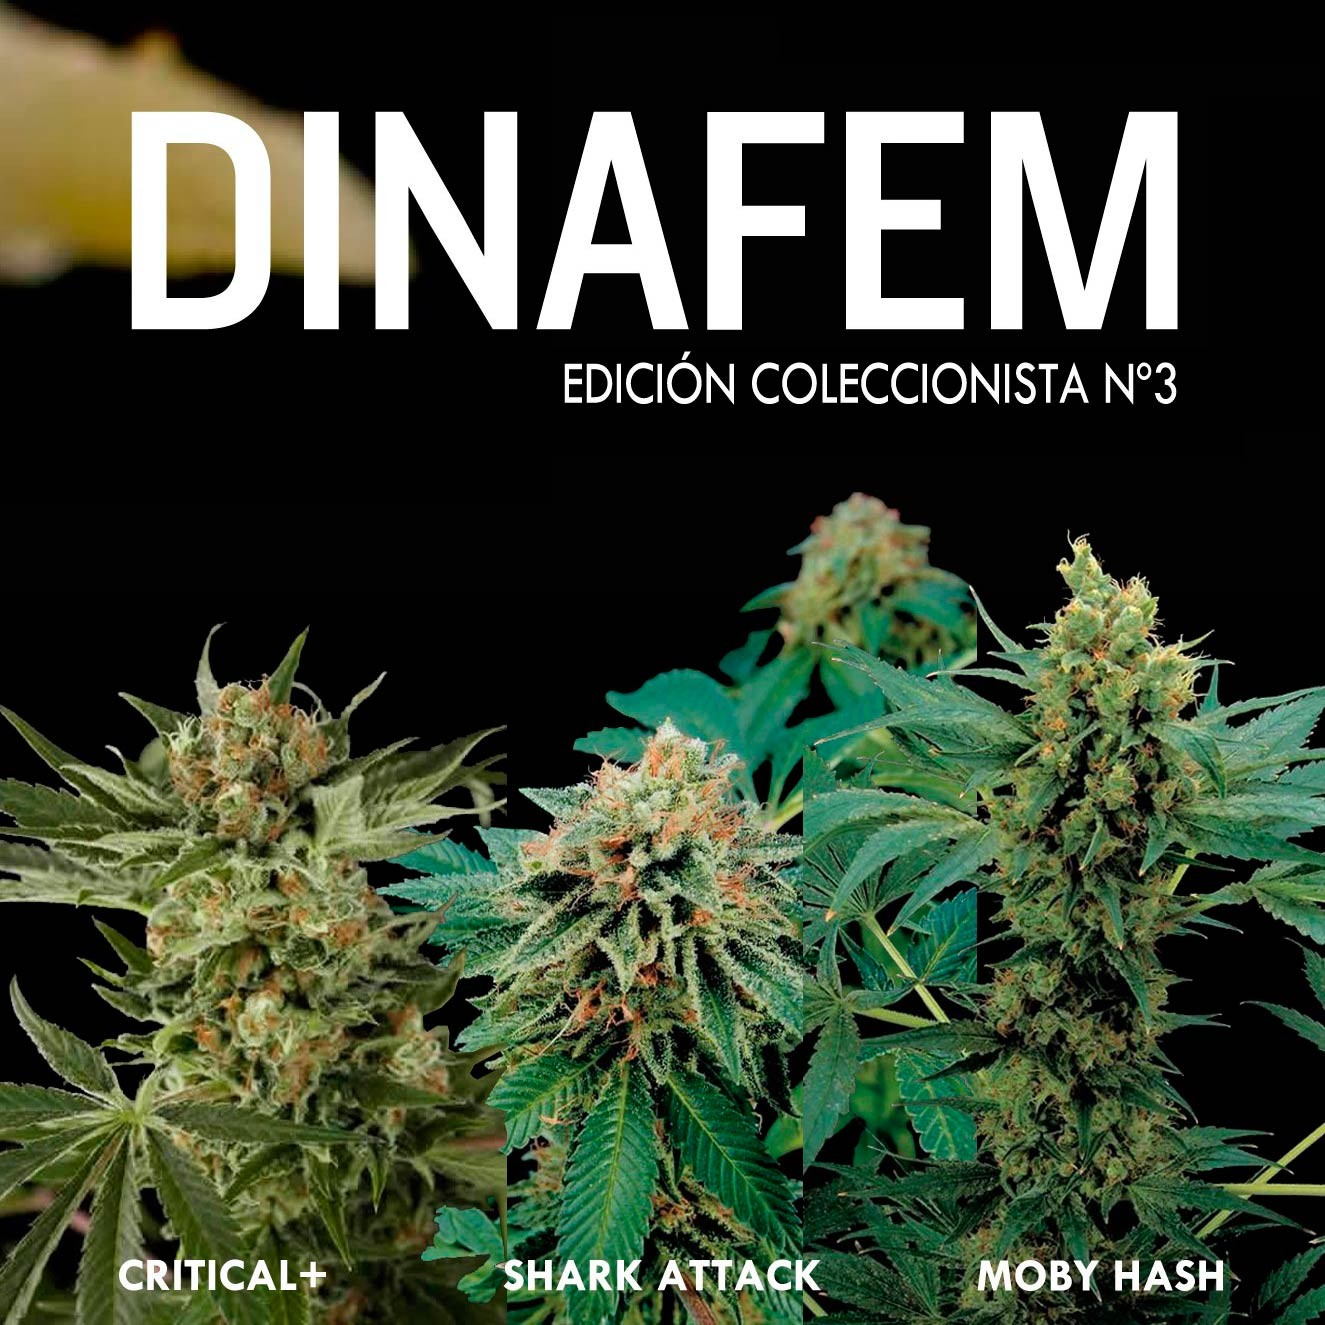 Dinafem collector #3 6 seeds